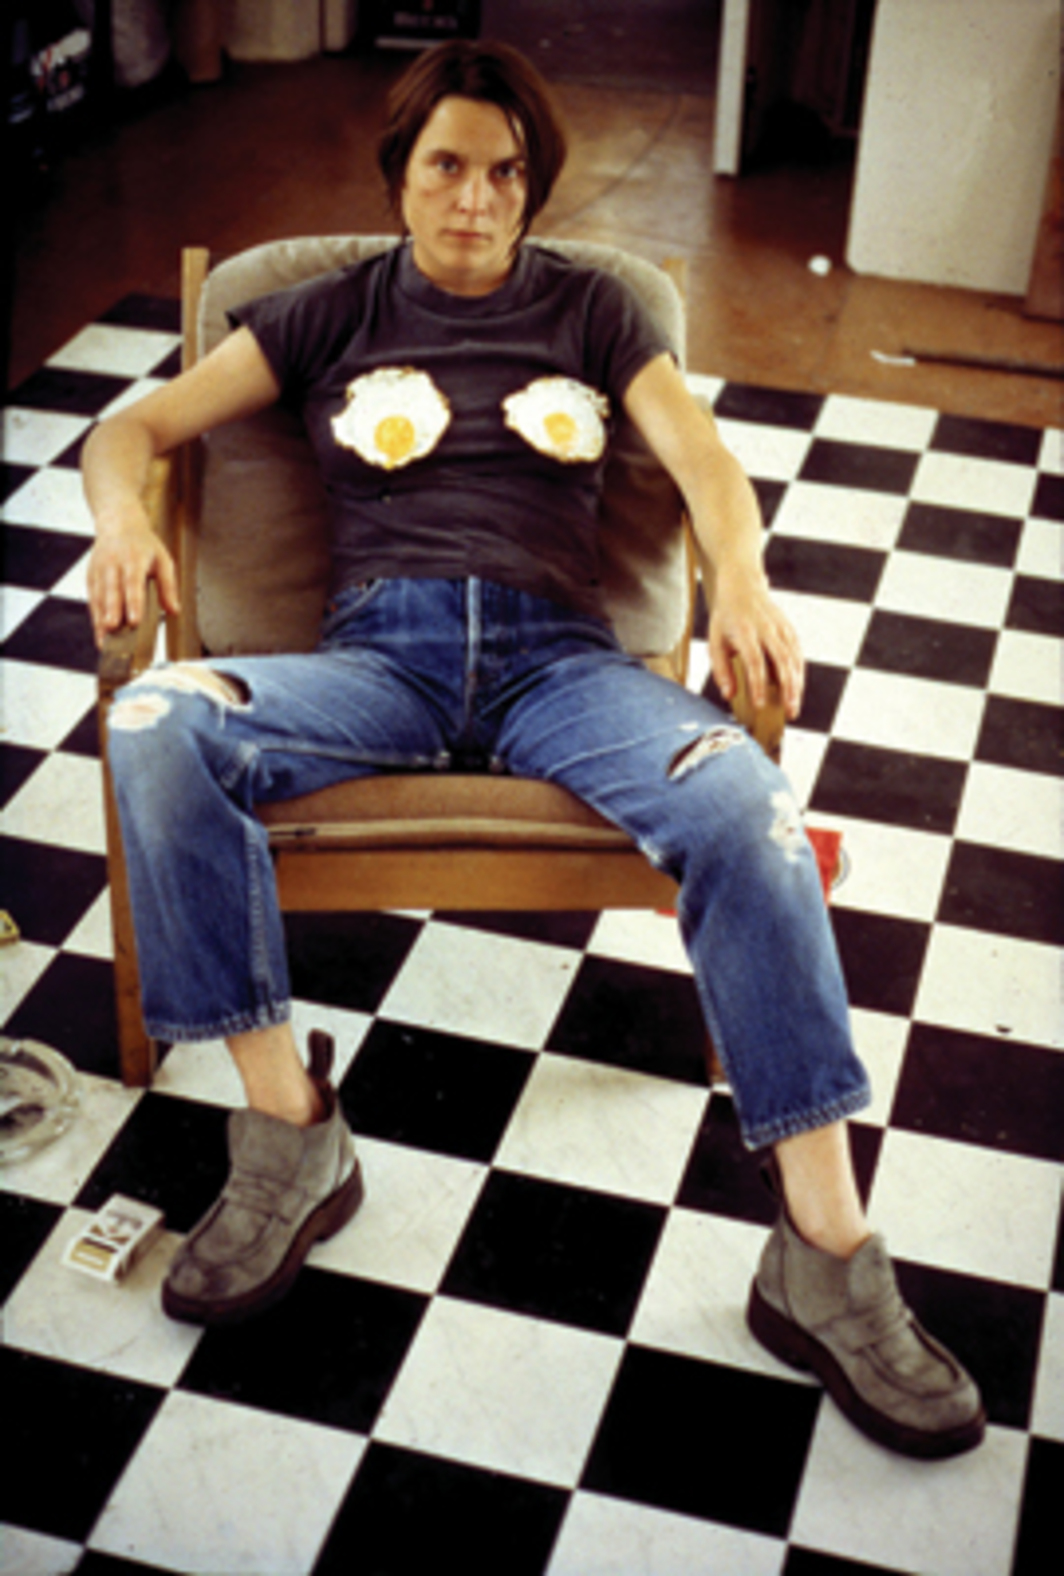 "Sarah Lucas, Self-Portrait with Fried Eggs, 1996, color inkjet print, 23 5/9 x 18 7/8""."